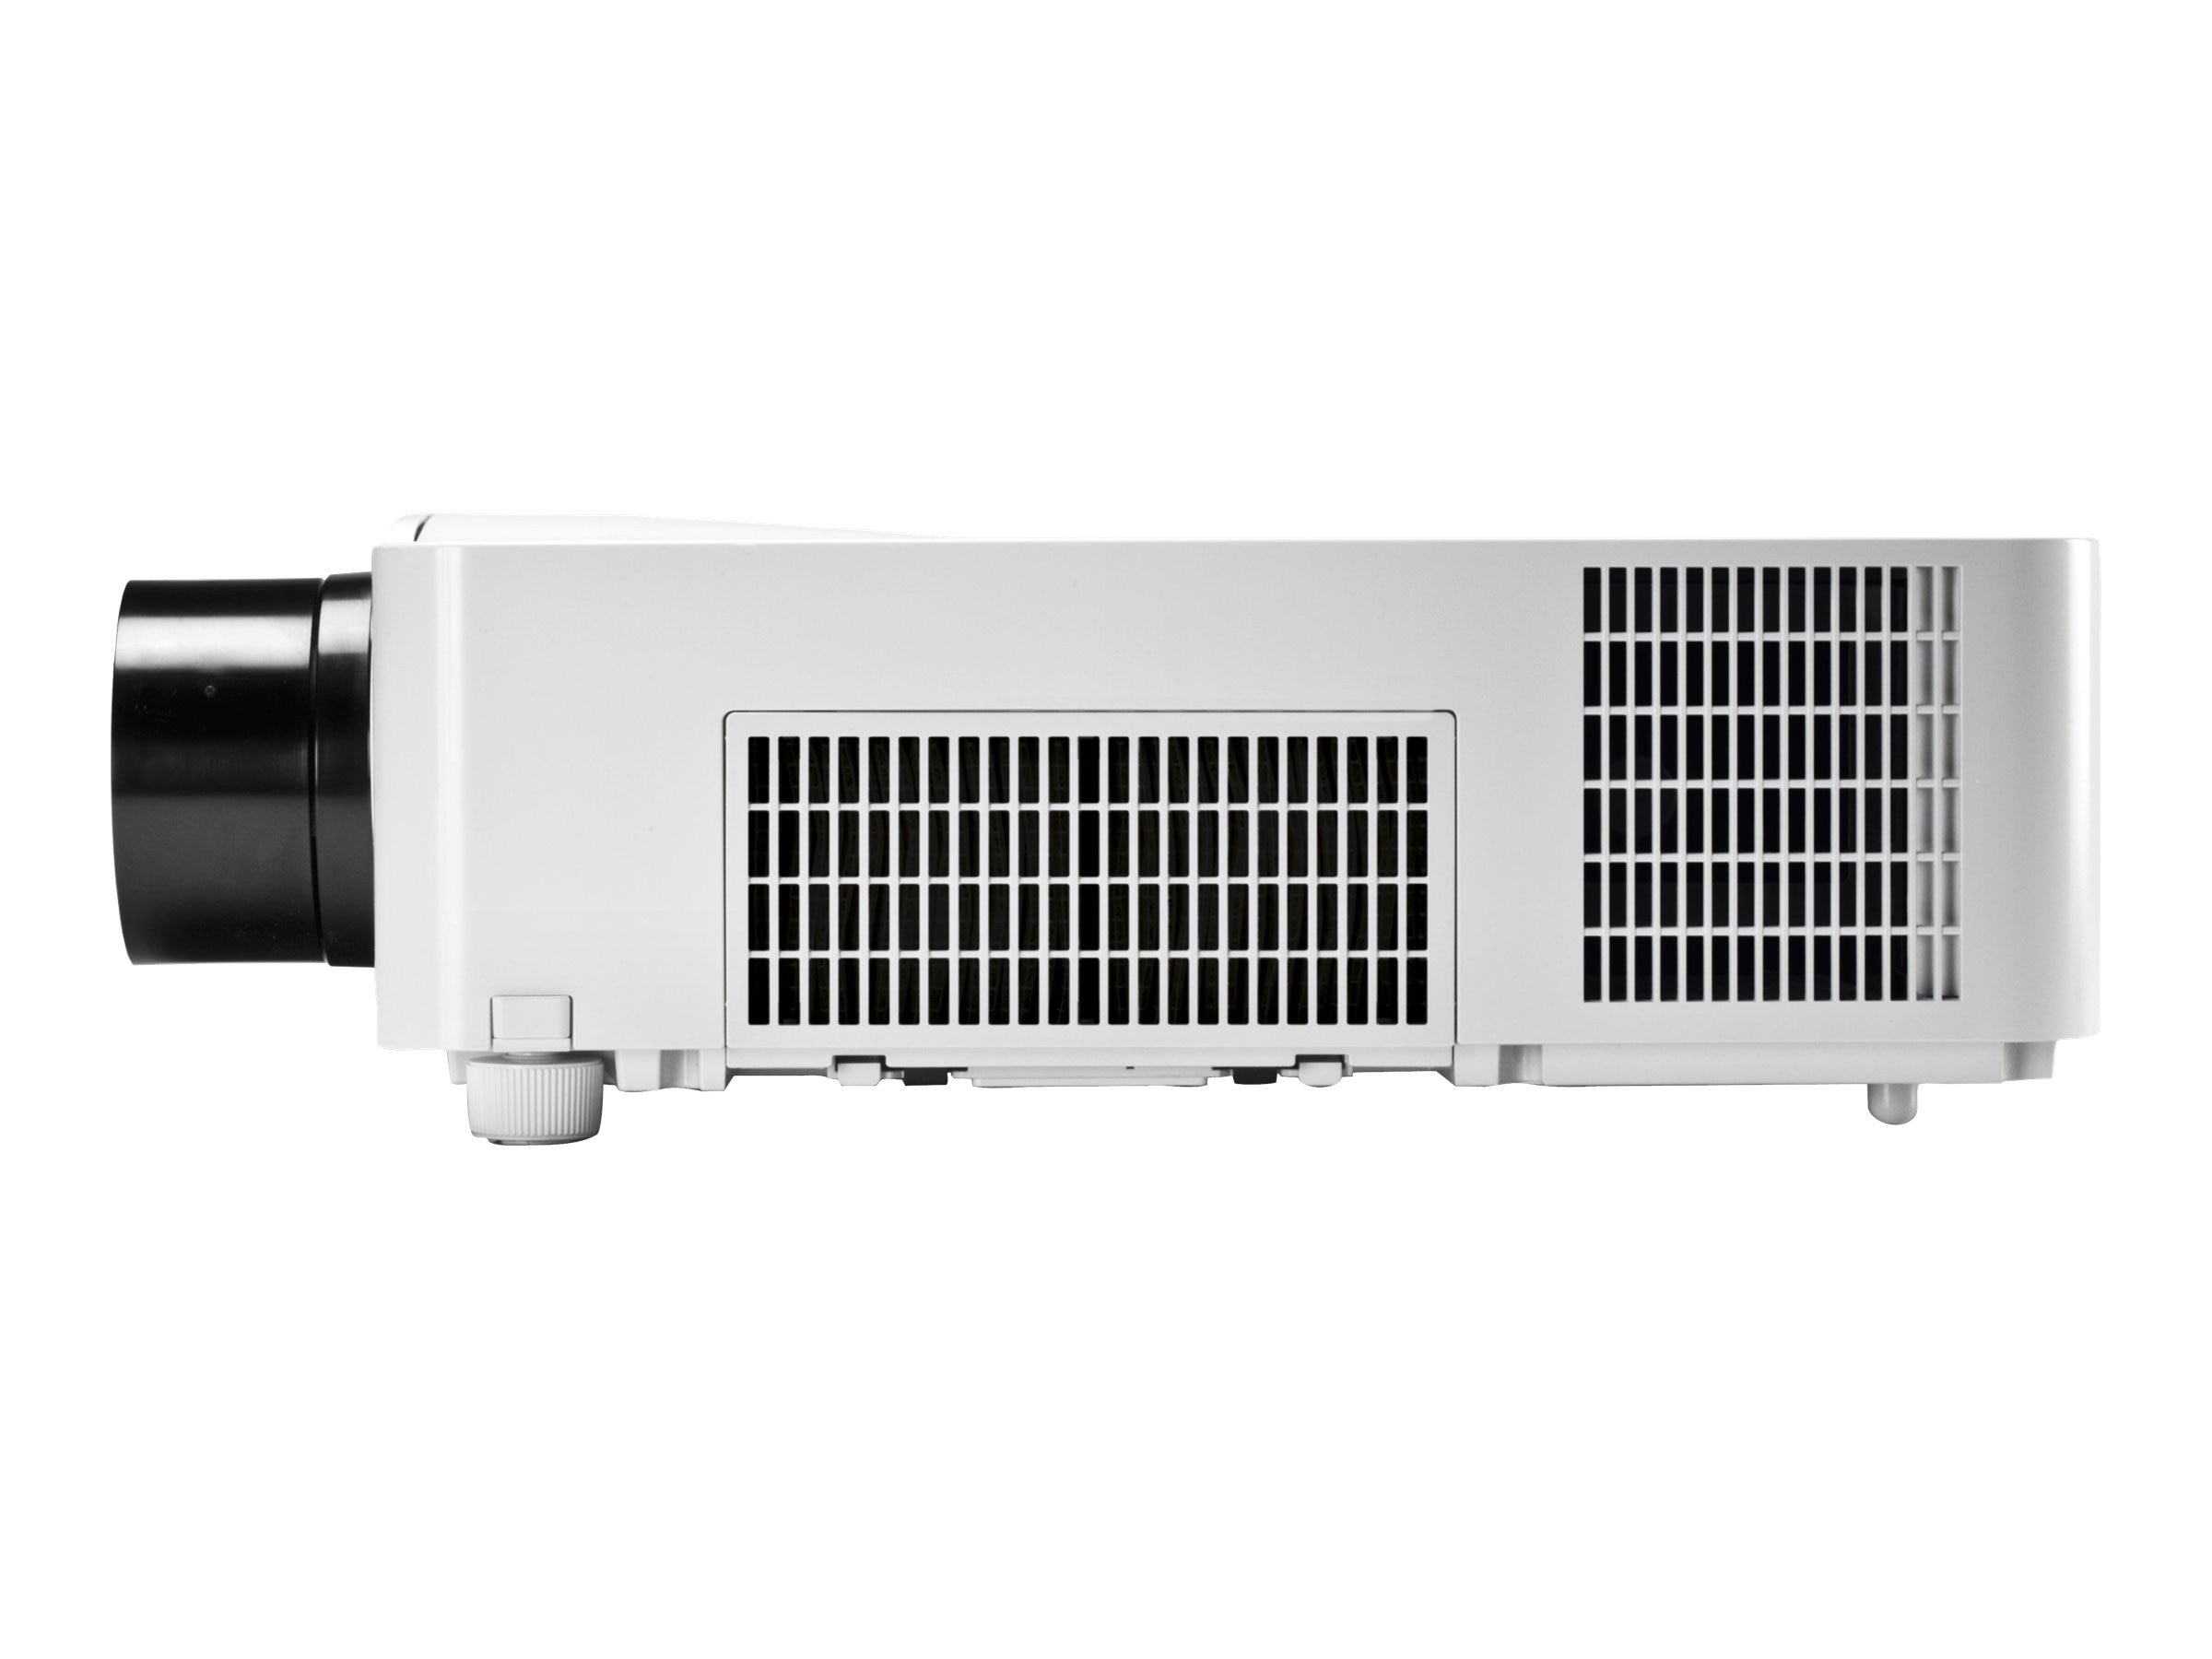 Hitachi CP-WX8255A LCD WXGA Projector, 5500 Lumens, White, CP-WX8255A